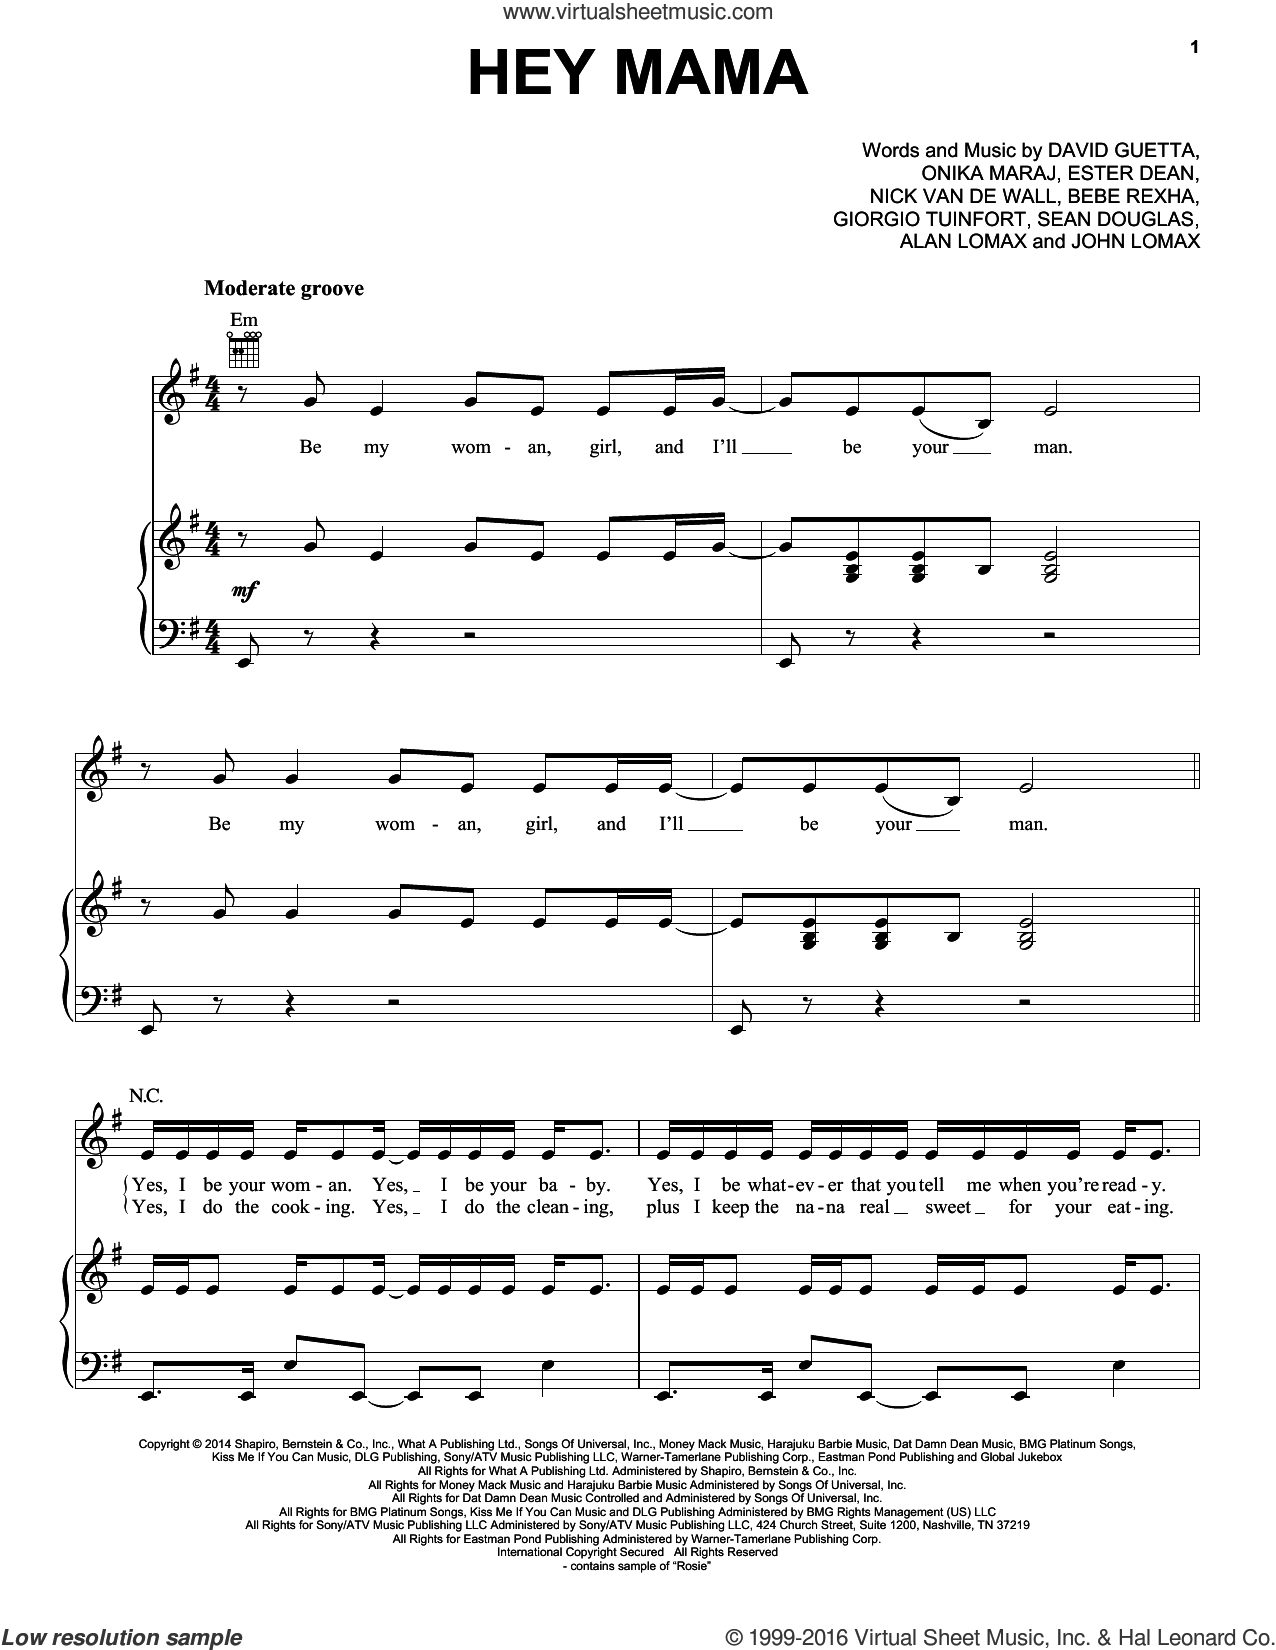 Hey Mama sheet music for voice, piano or guitar by David Guetta feat. Nicki Minaj & Afrojack, Bebe Rexha, David Guetta, Ester Dean, Giorgio Tuinfort, John A. Lomax, Nick Van De Wall, Nicki Minaj and Sean Douglas, intermediate skill level